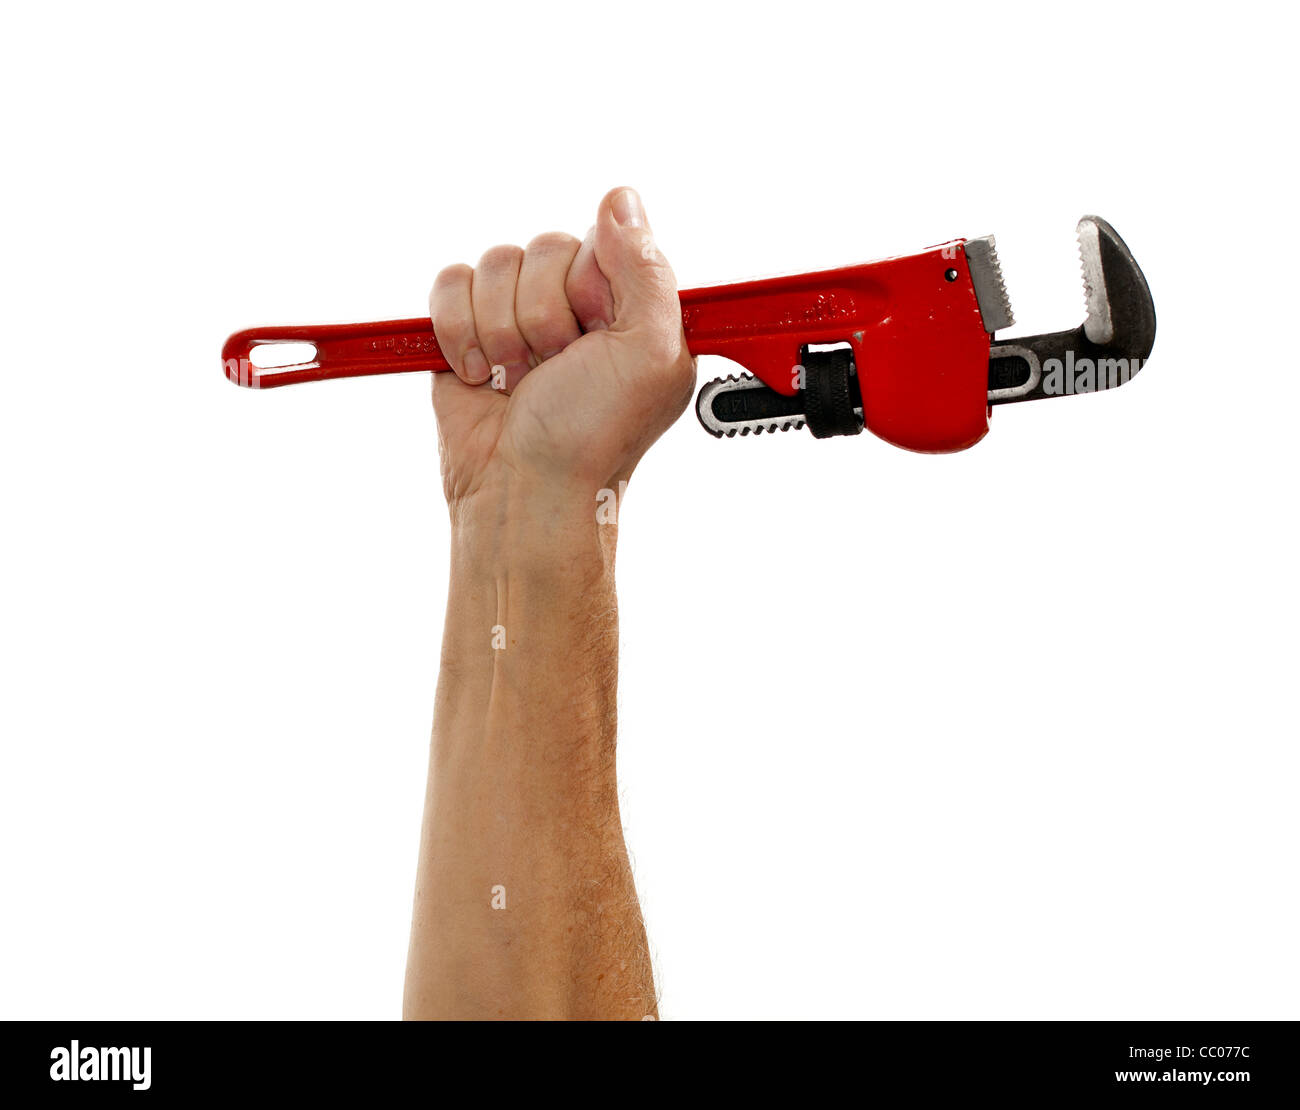 Man holding a large red wrench isolated against white - Stock Image